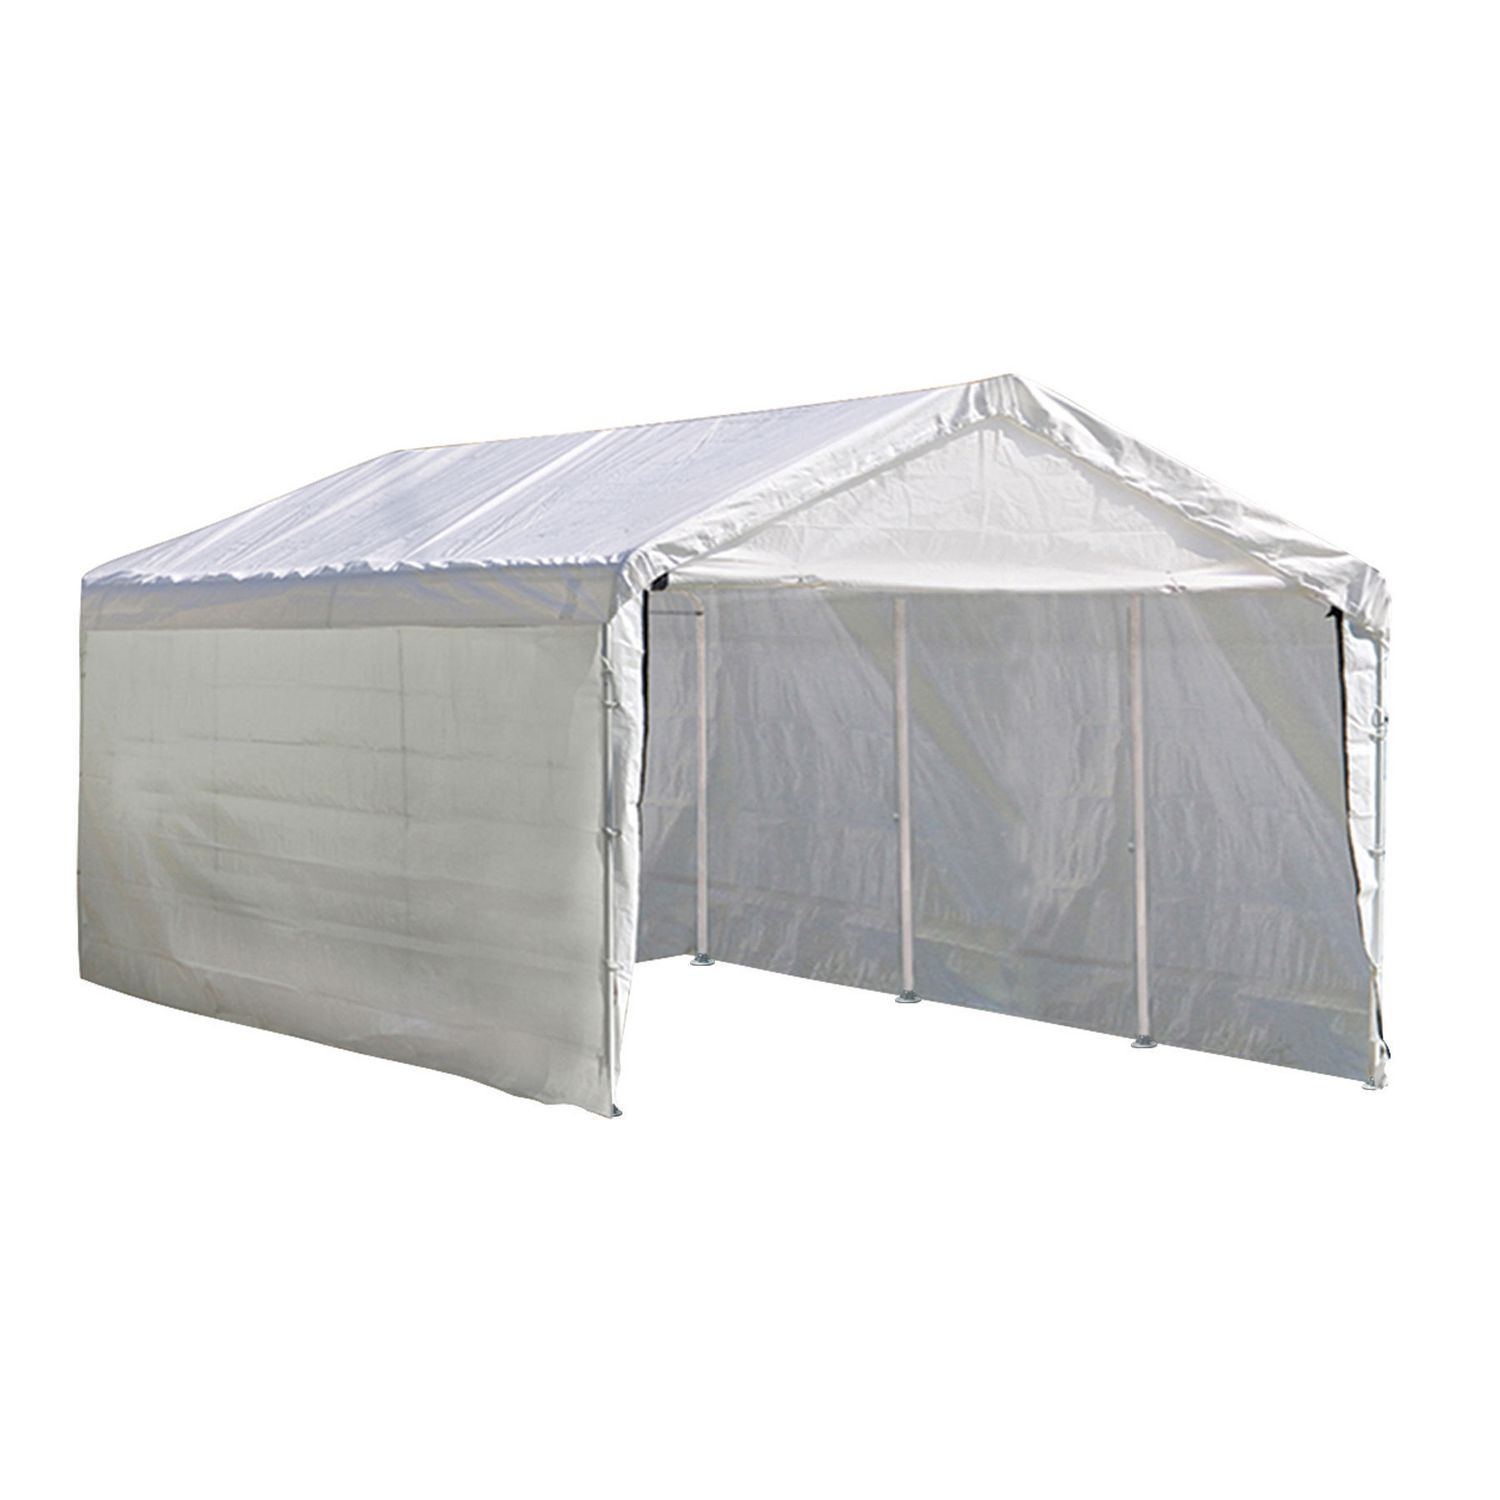 in p with ft integrated portable shed backyard sheds greenhouse shelterlogic shelving x greenhouses